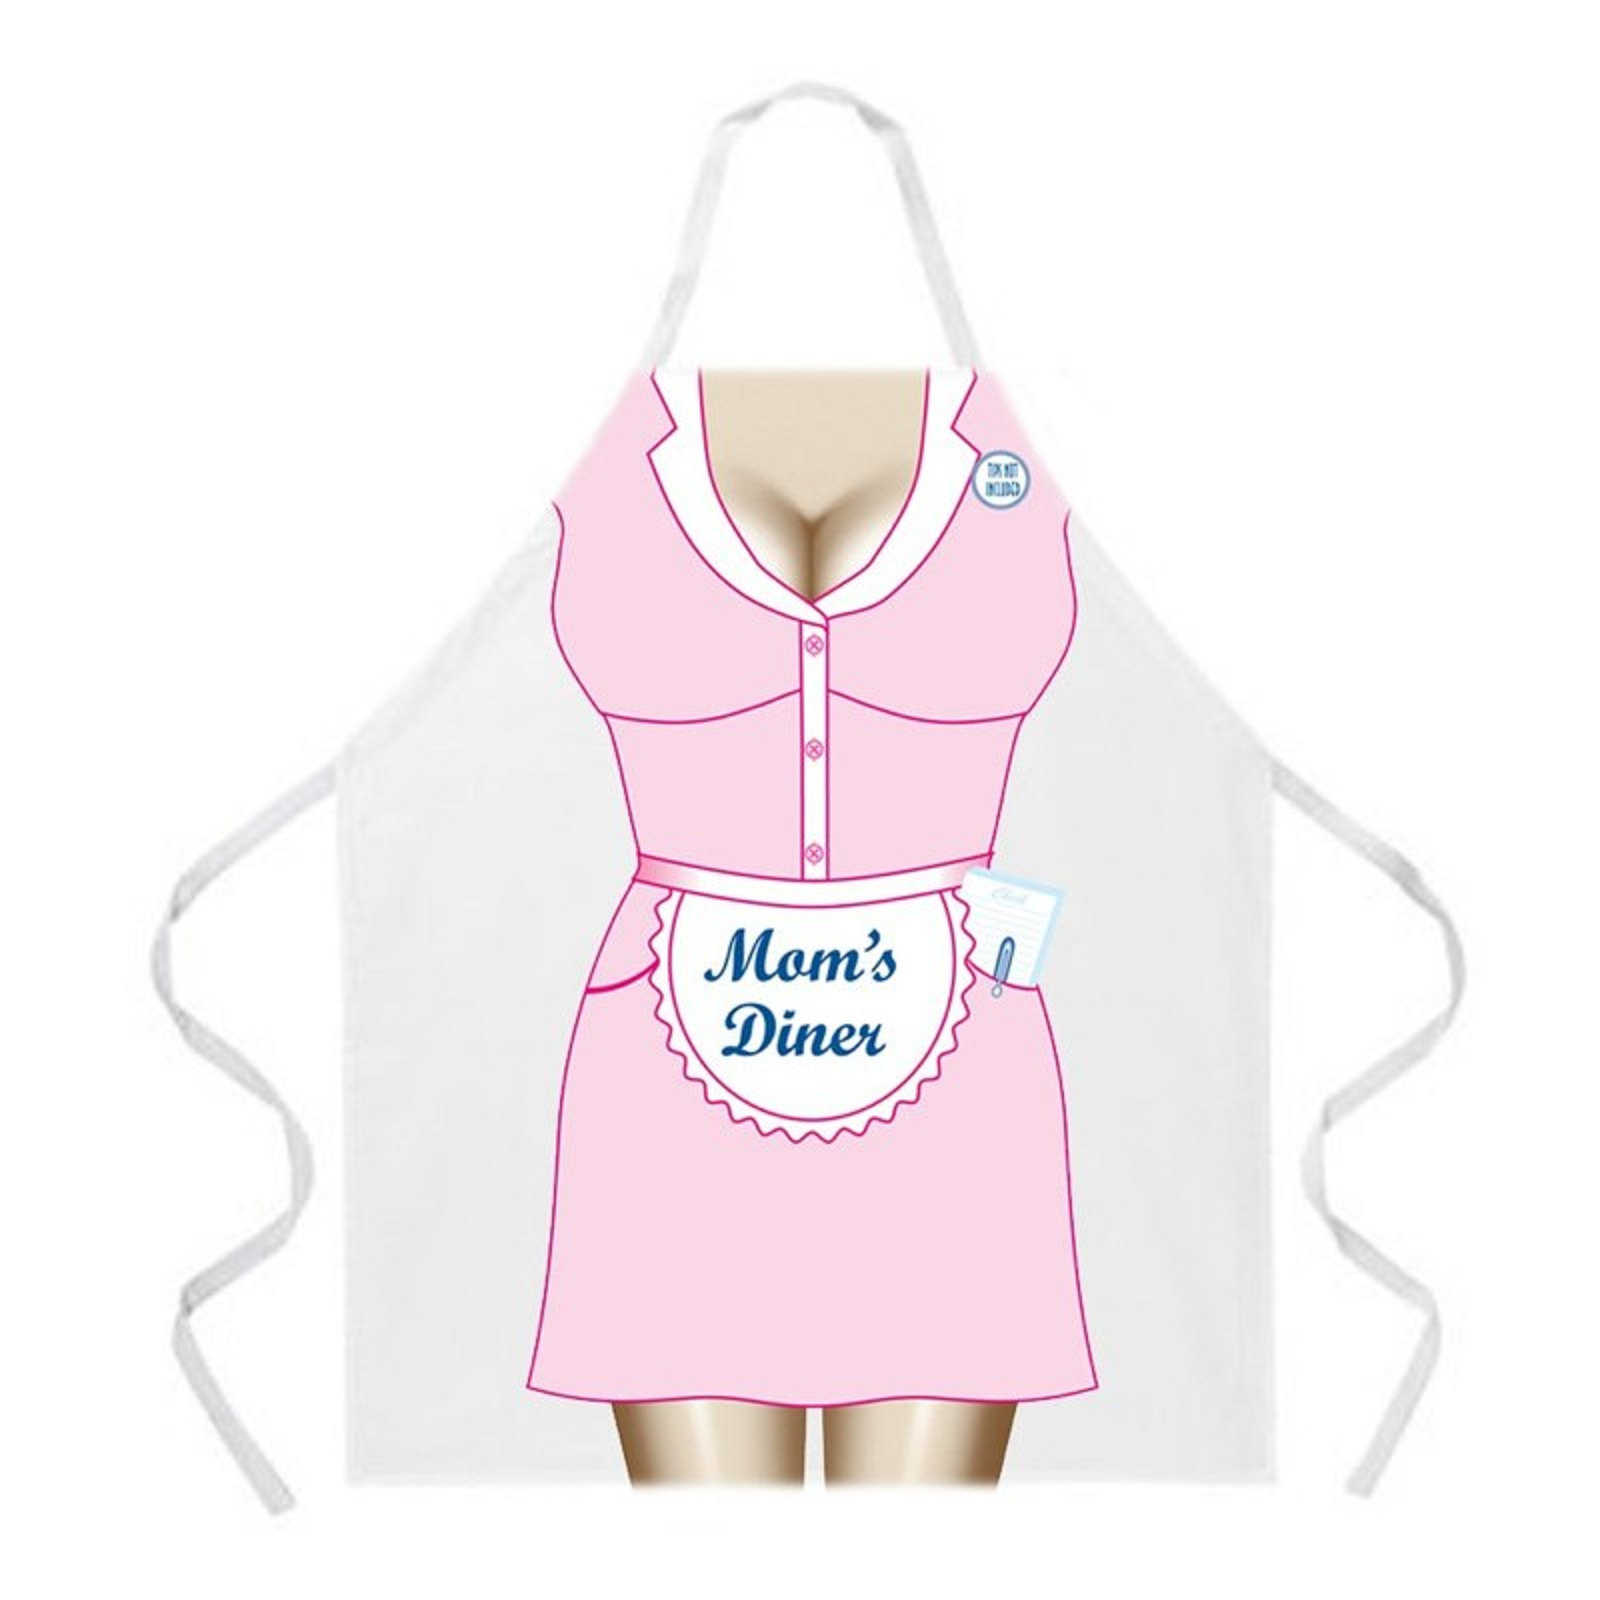 L.A. Imprints Attitude Apron Mom's Diner Apron One Size Fits Most Style LI2034 at Sears.com